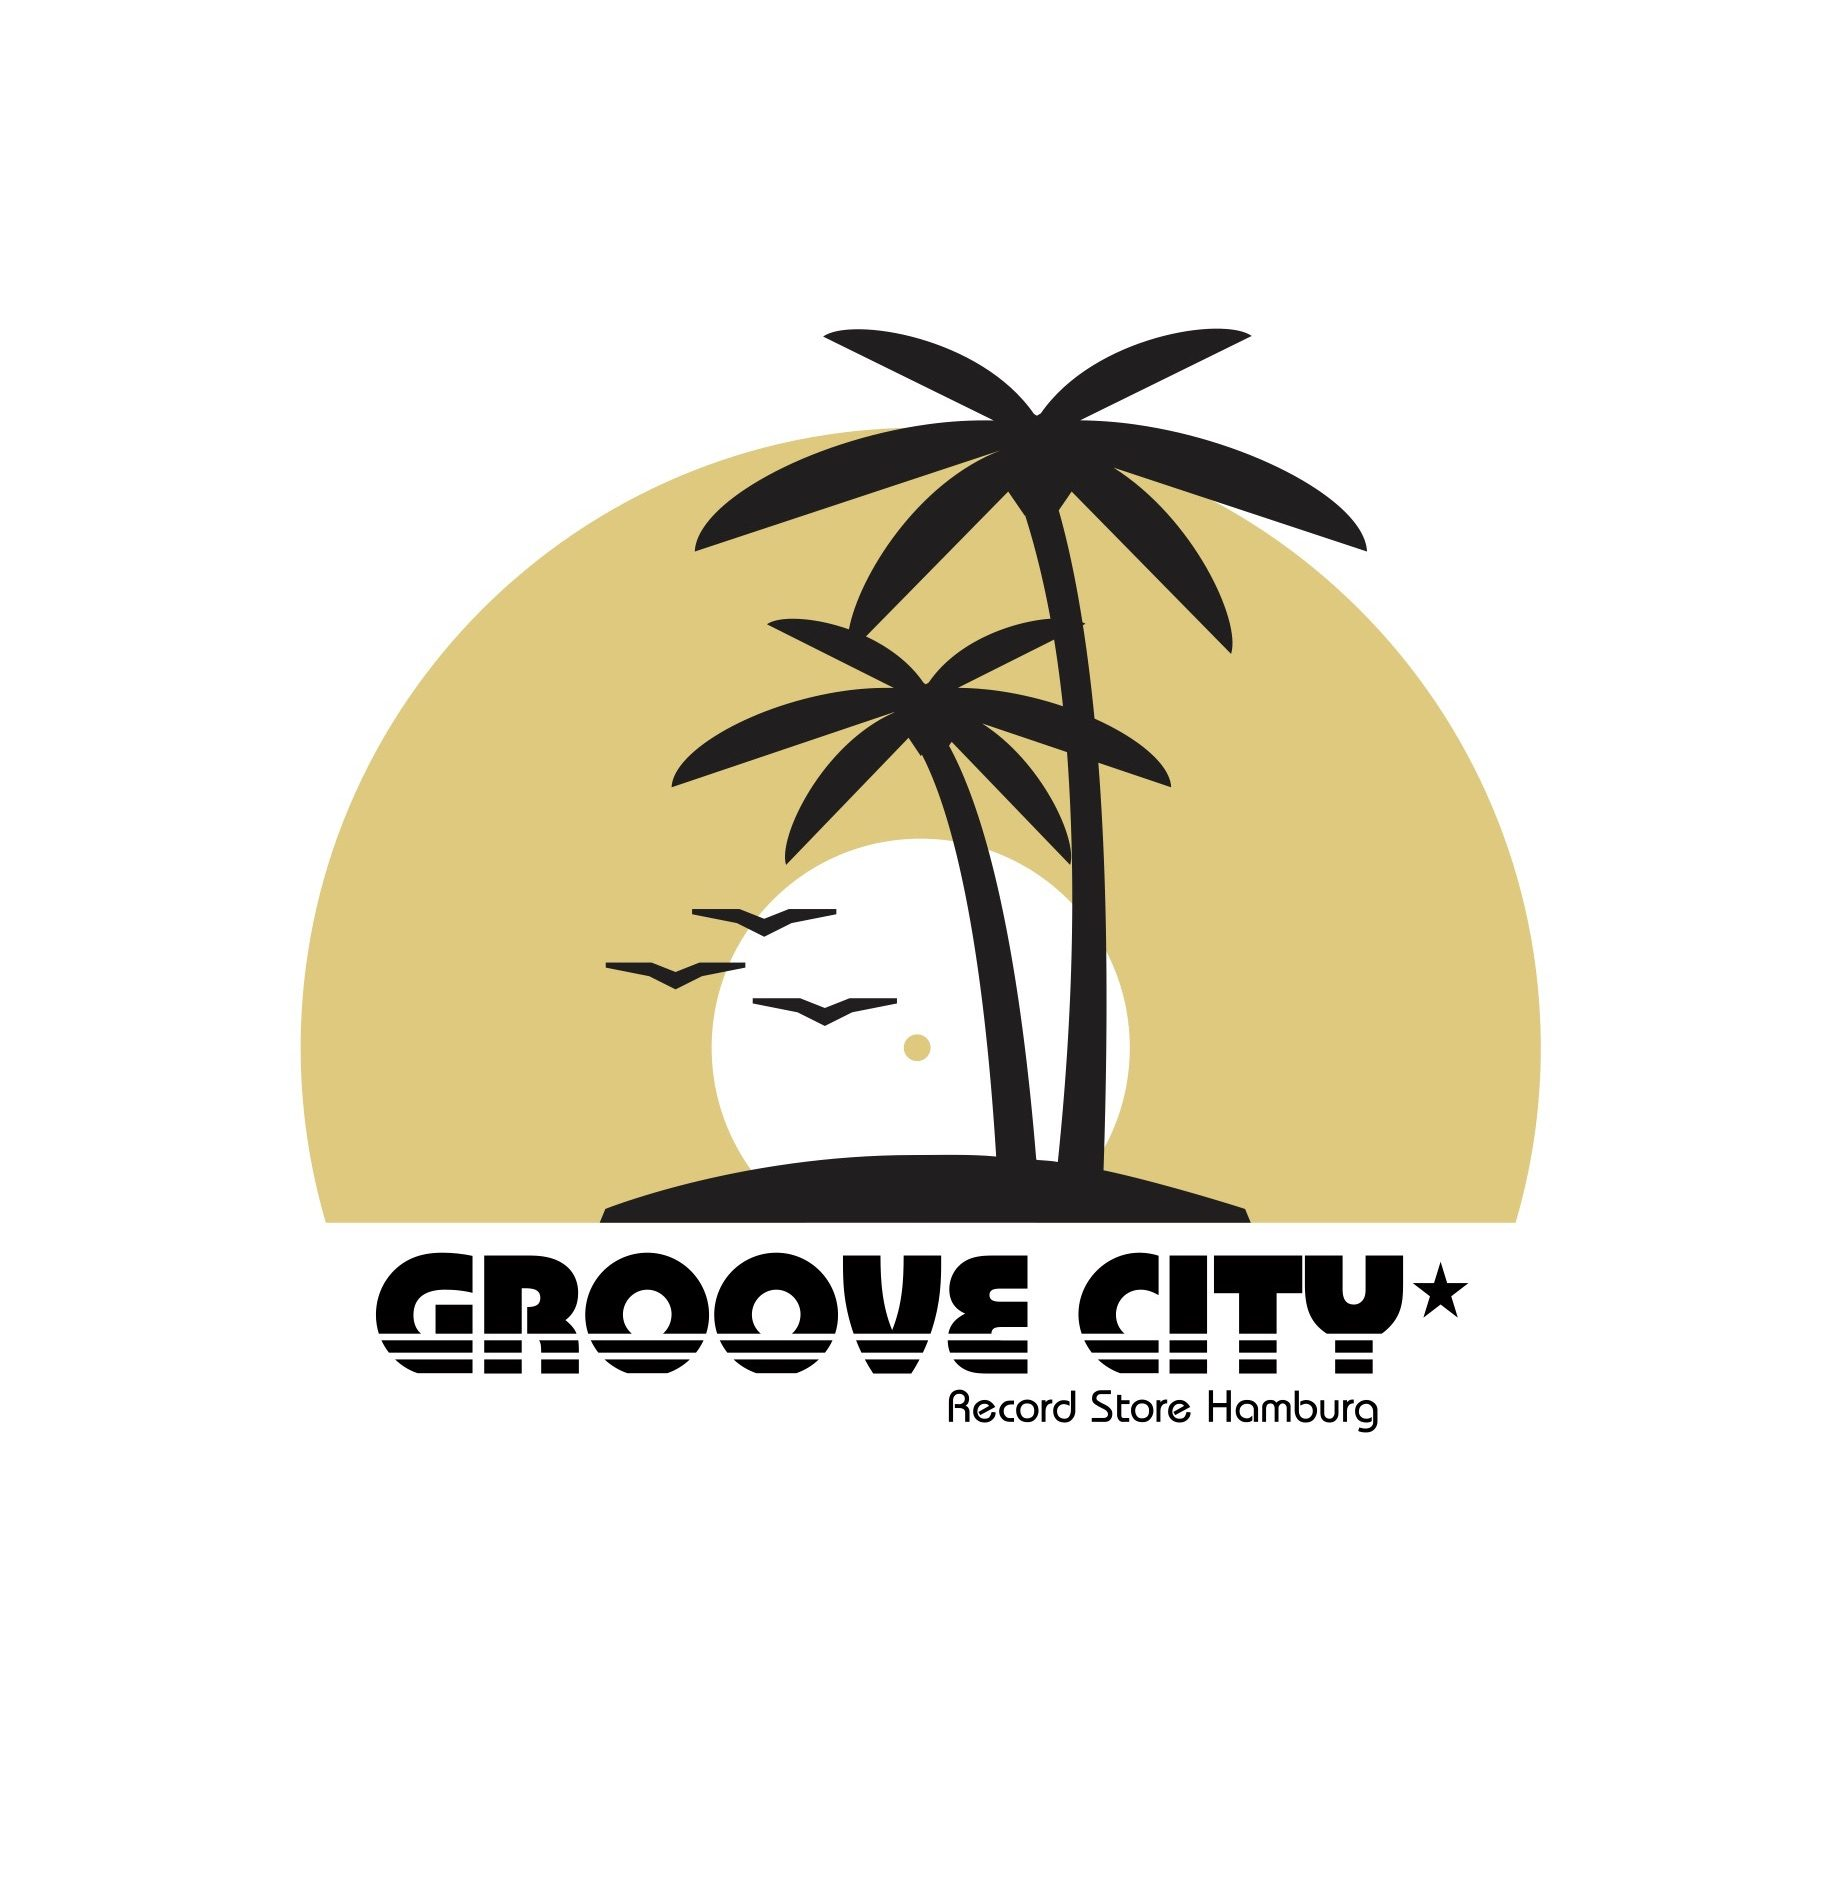 Groove City Recordstore*